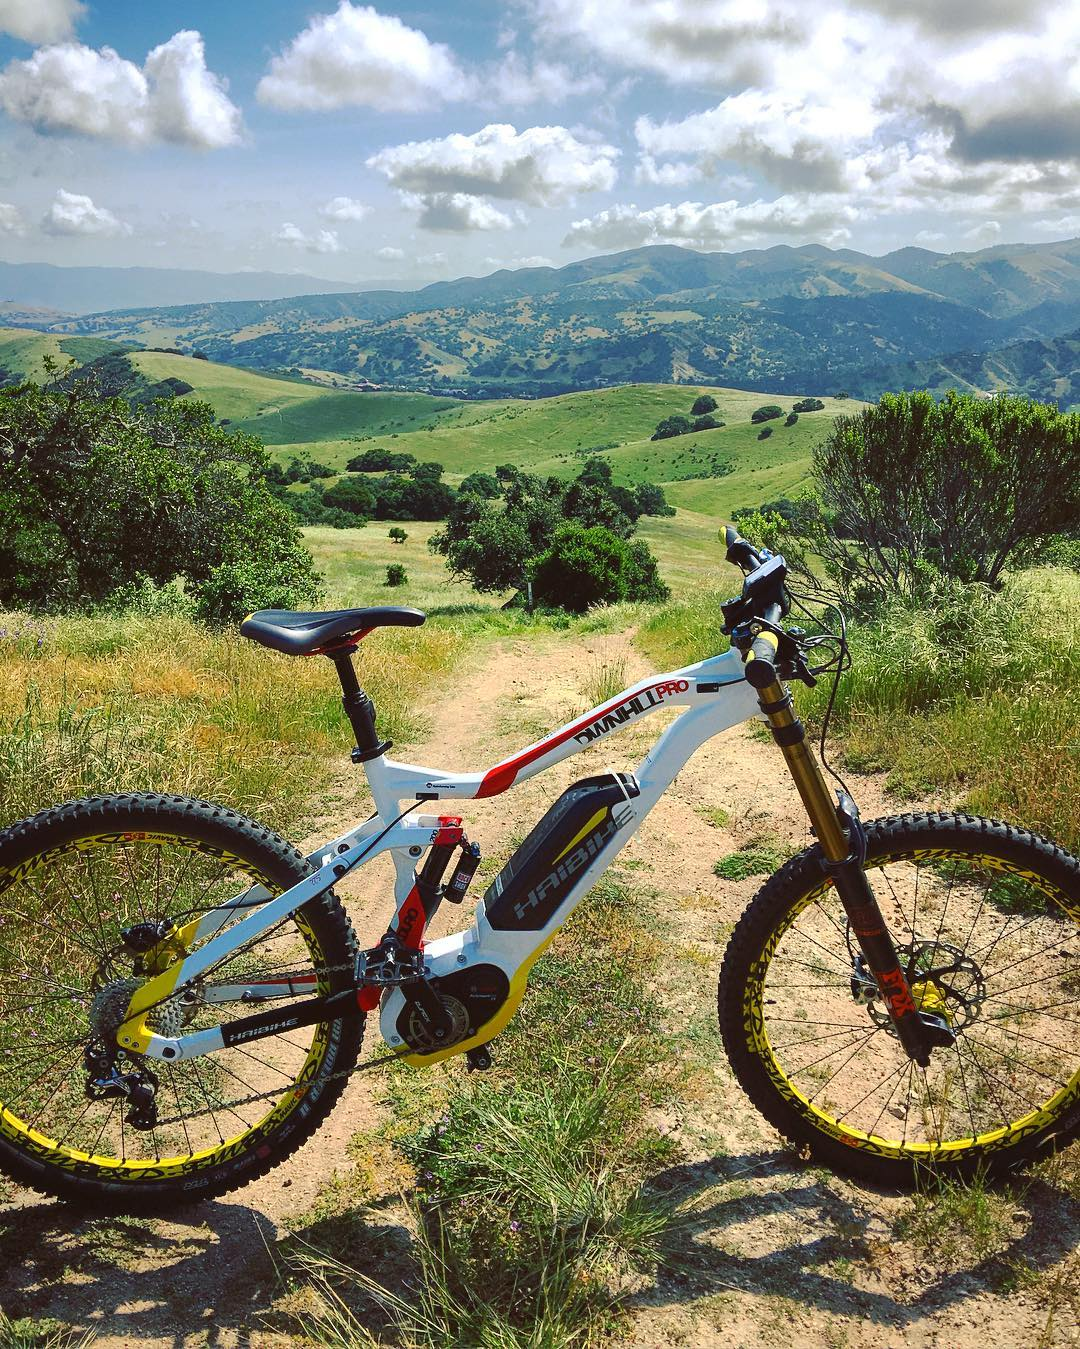 Everywhere feels like #downhill on the  #xduro #dwnhllpro 😛 #DH #MTB #Emtb #EBike #haibike @haibikeusa